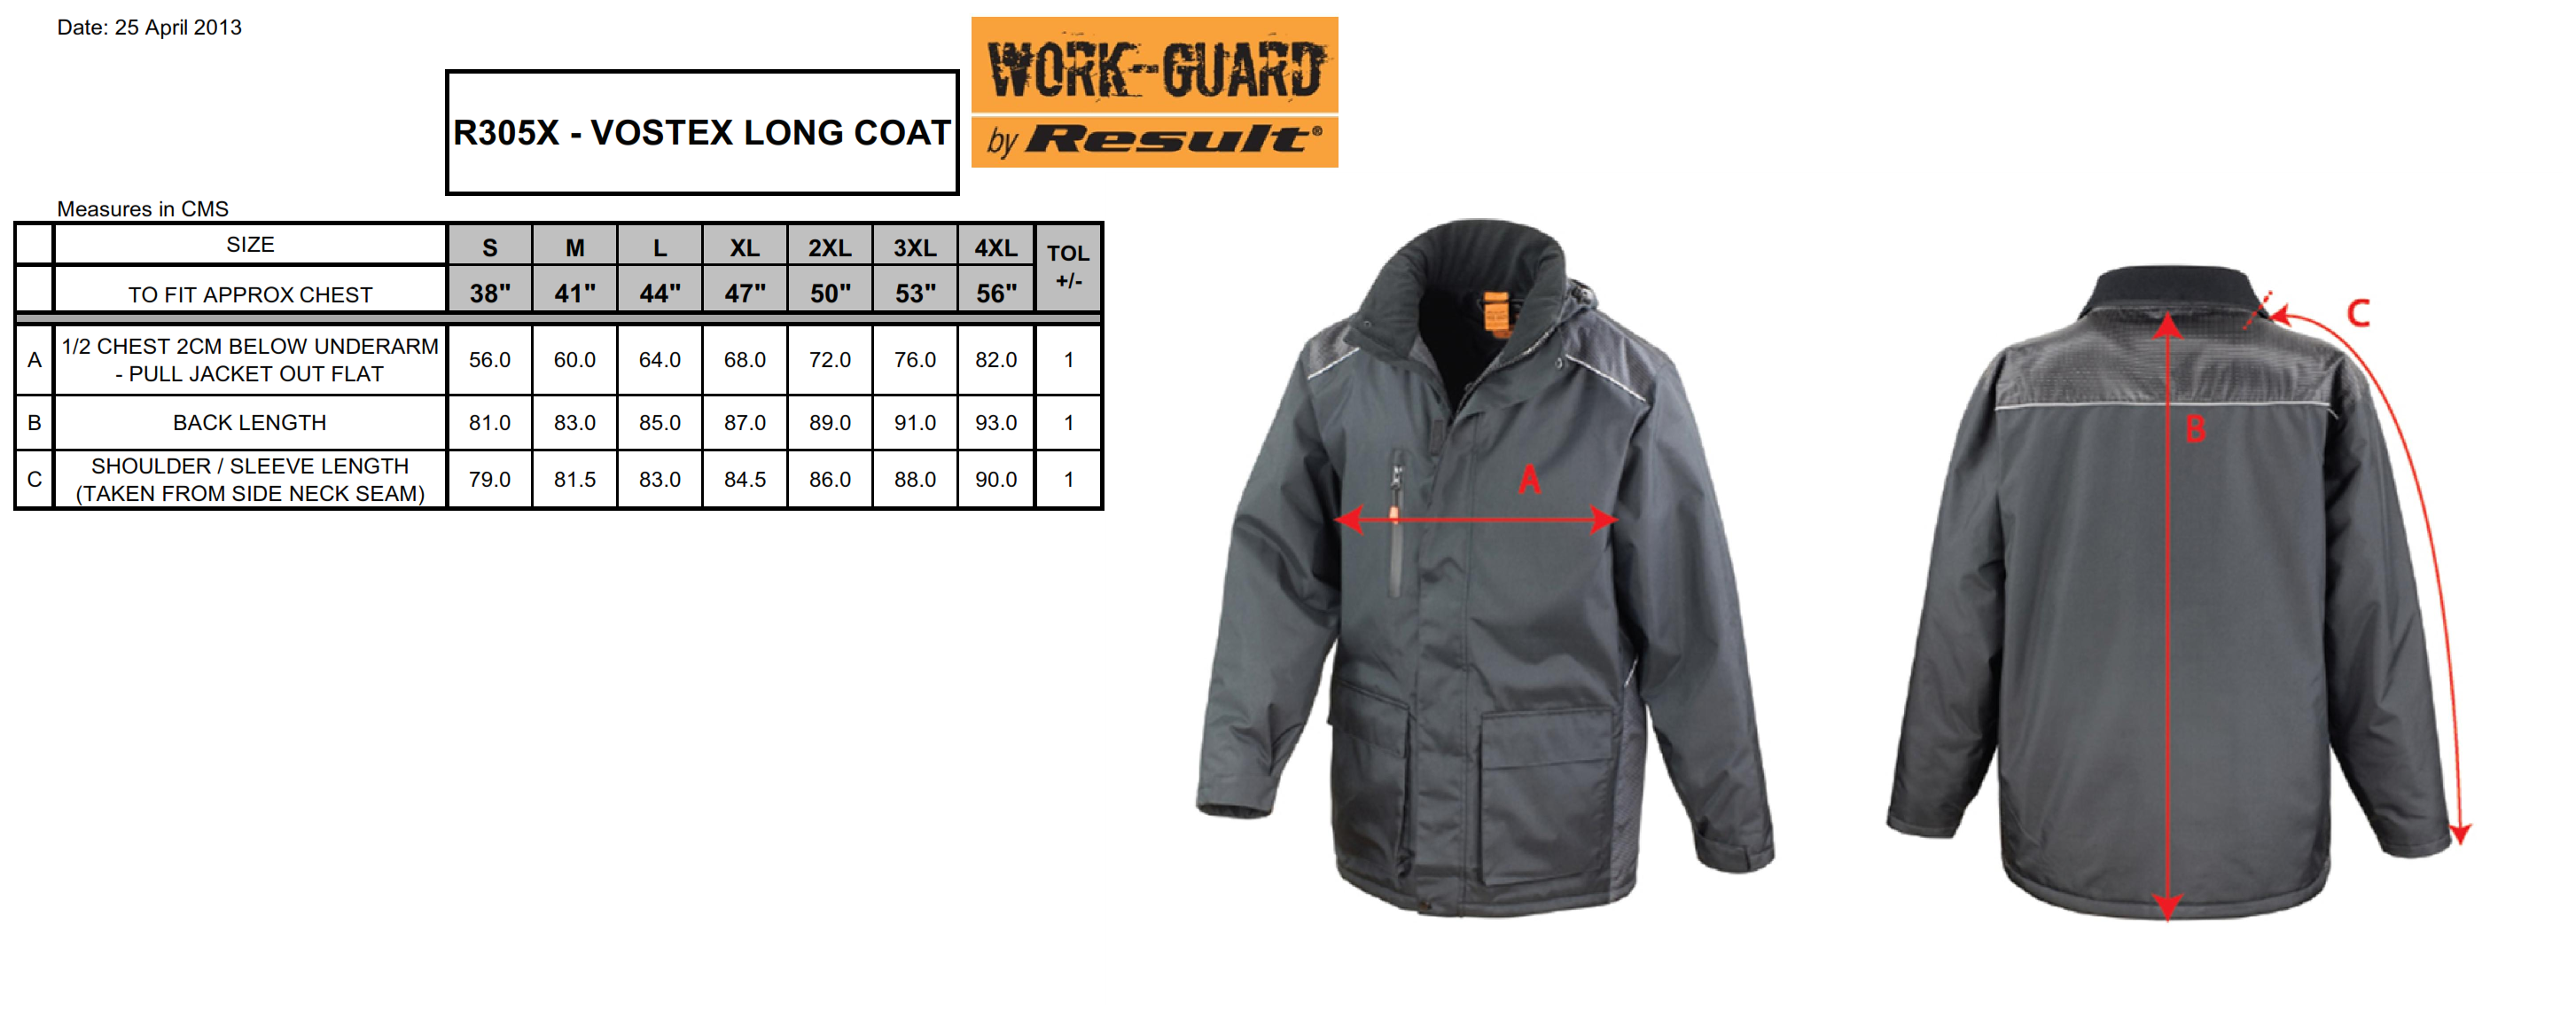 Result: Work-Guard Vostex Long Coat R305X